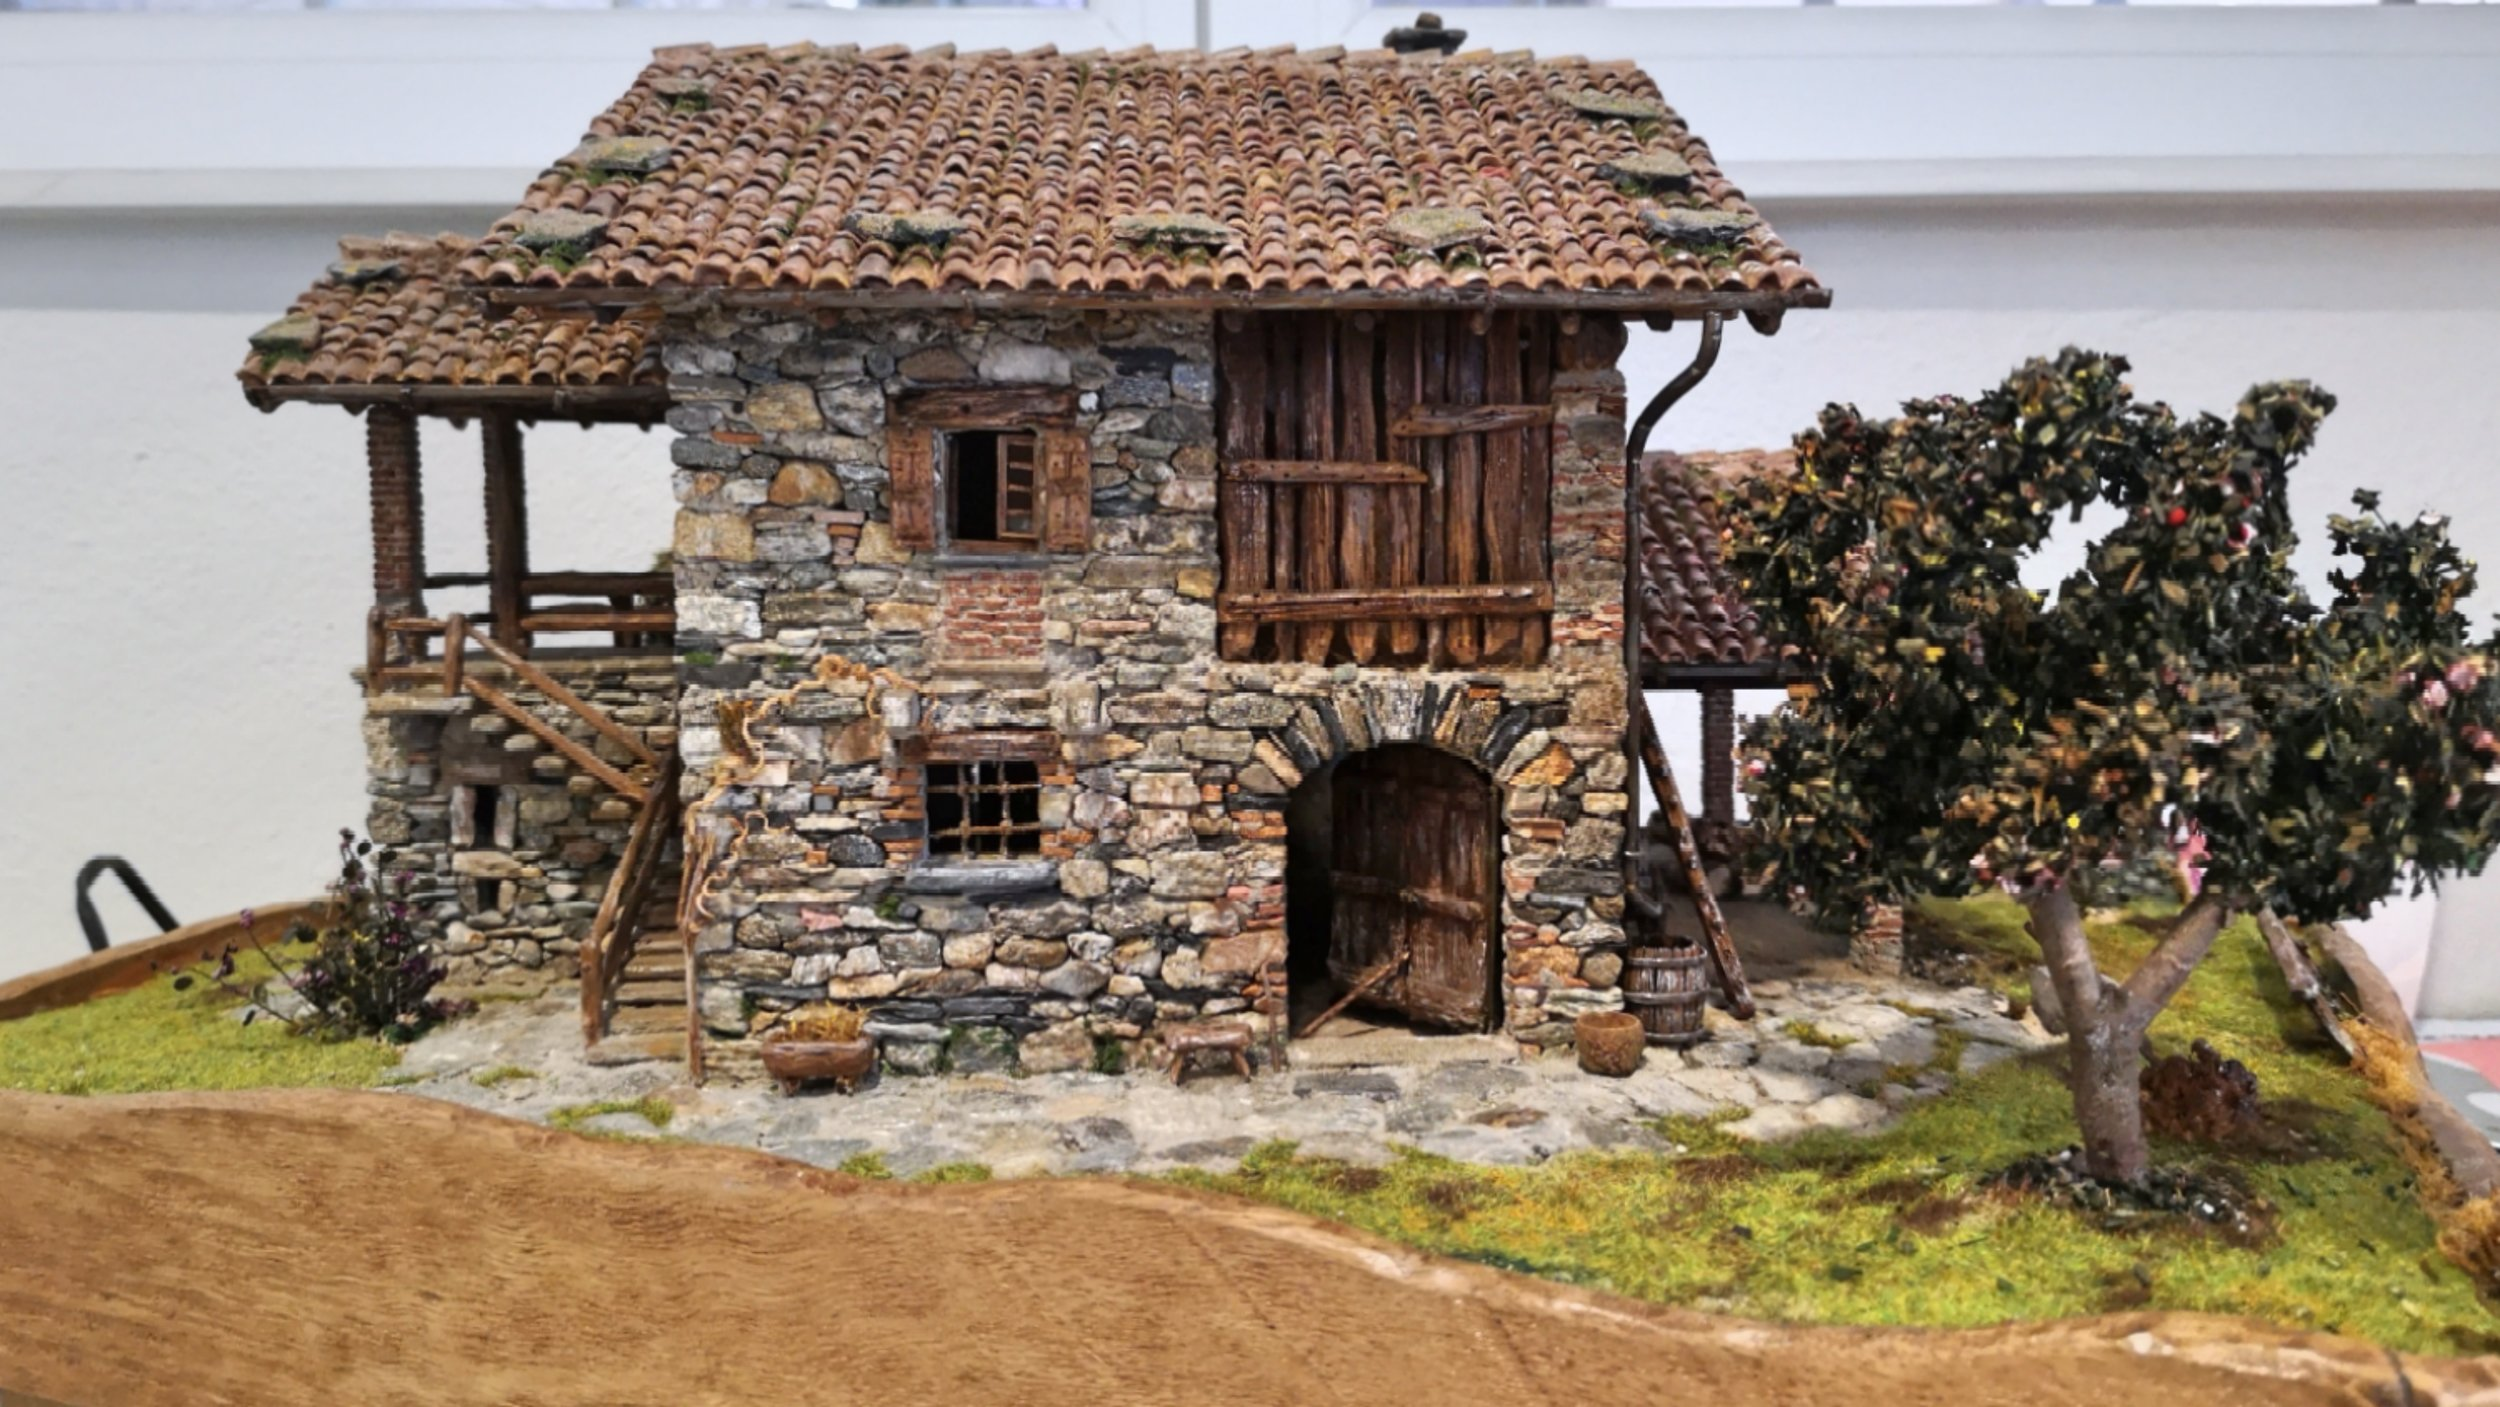 Another masonry miniature by Alberto Zanotta. We adore rustic houses!